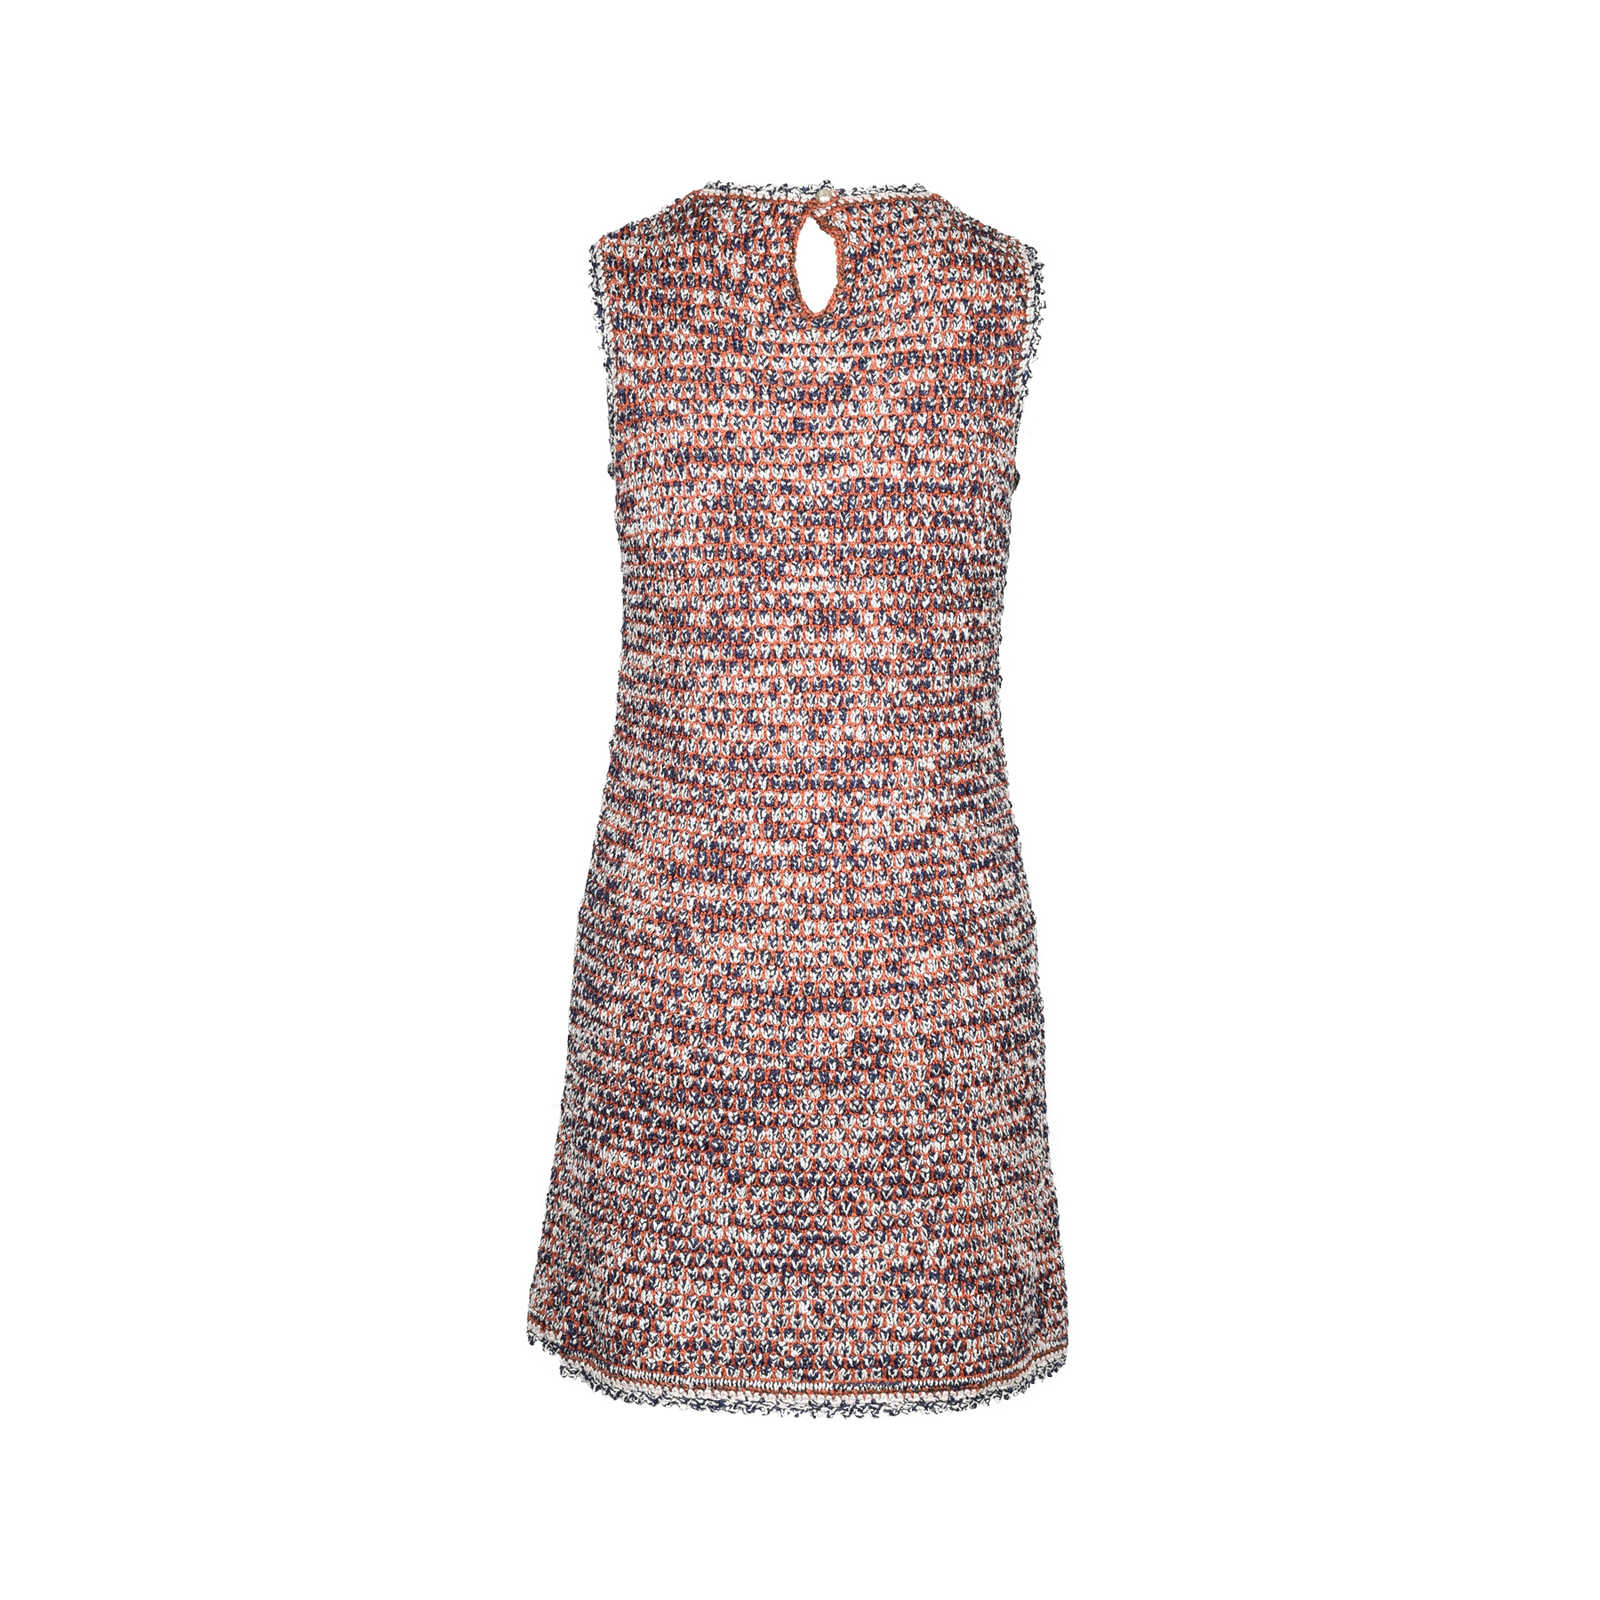 cd26a3736 ... Authentic Second Hand Chanel Sleeveless Knit Dress (PSS-377-00015) -  Thumbnail ...